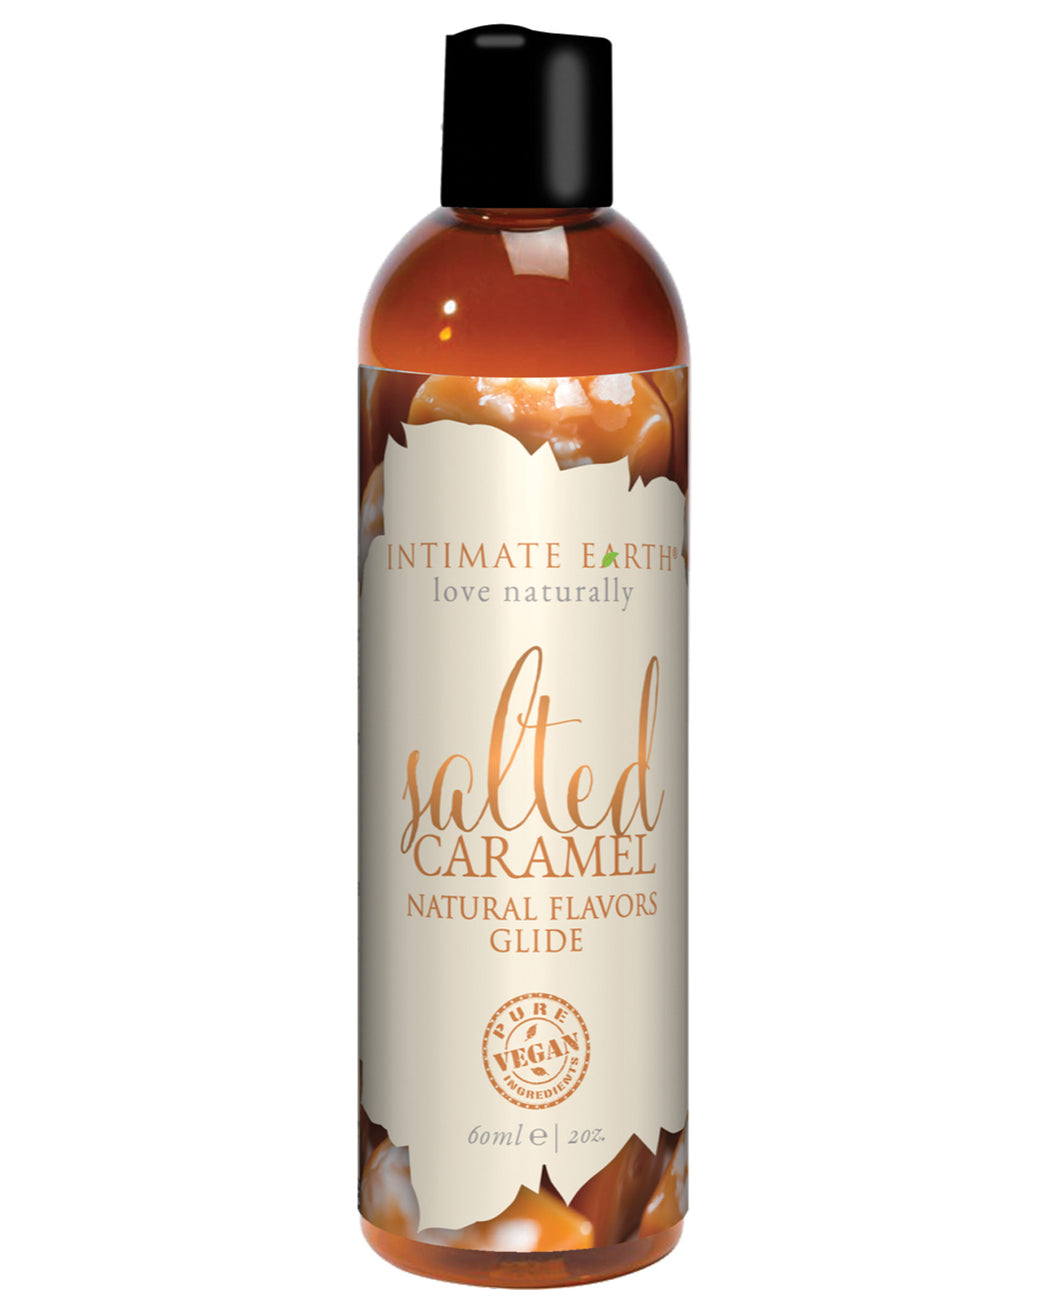 Intimate Earth Natural Flavors Glide - 60 ml Salted Caramel